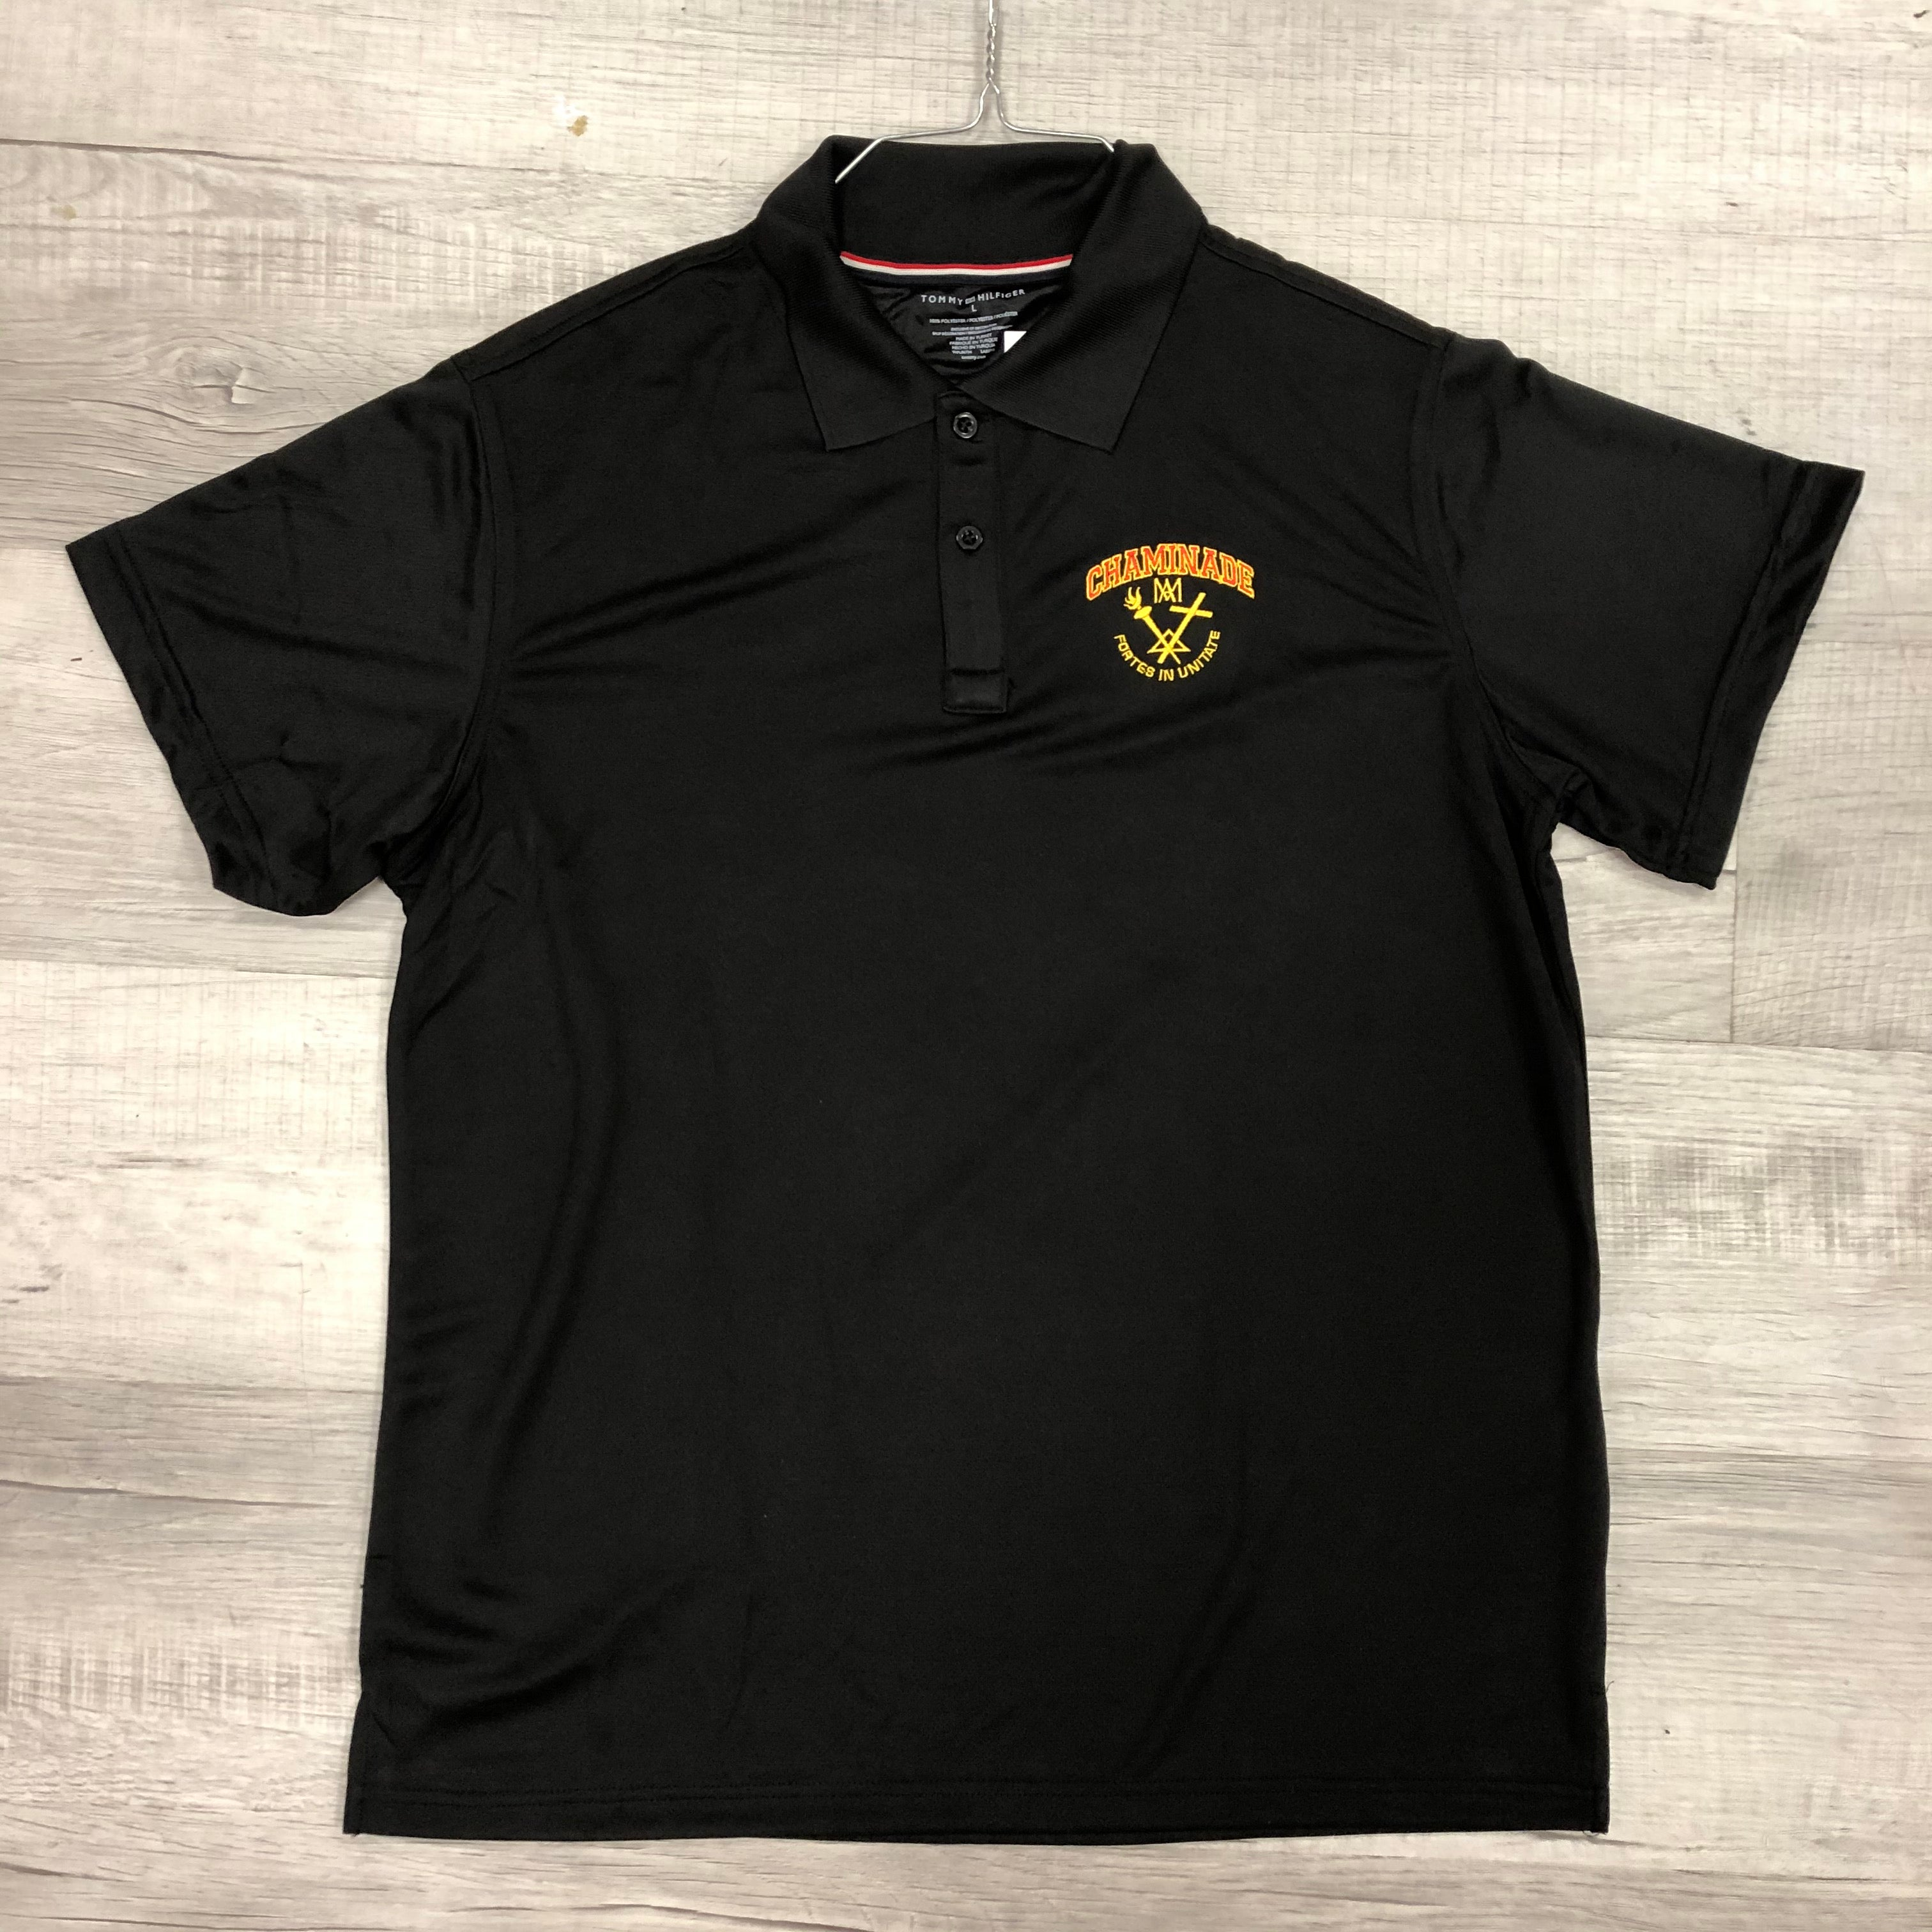 Tommy Hilfiger Polo in Black with Chaminade and Crest